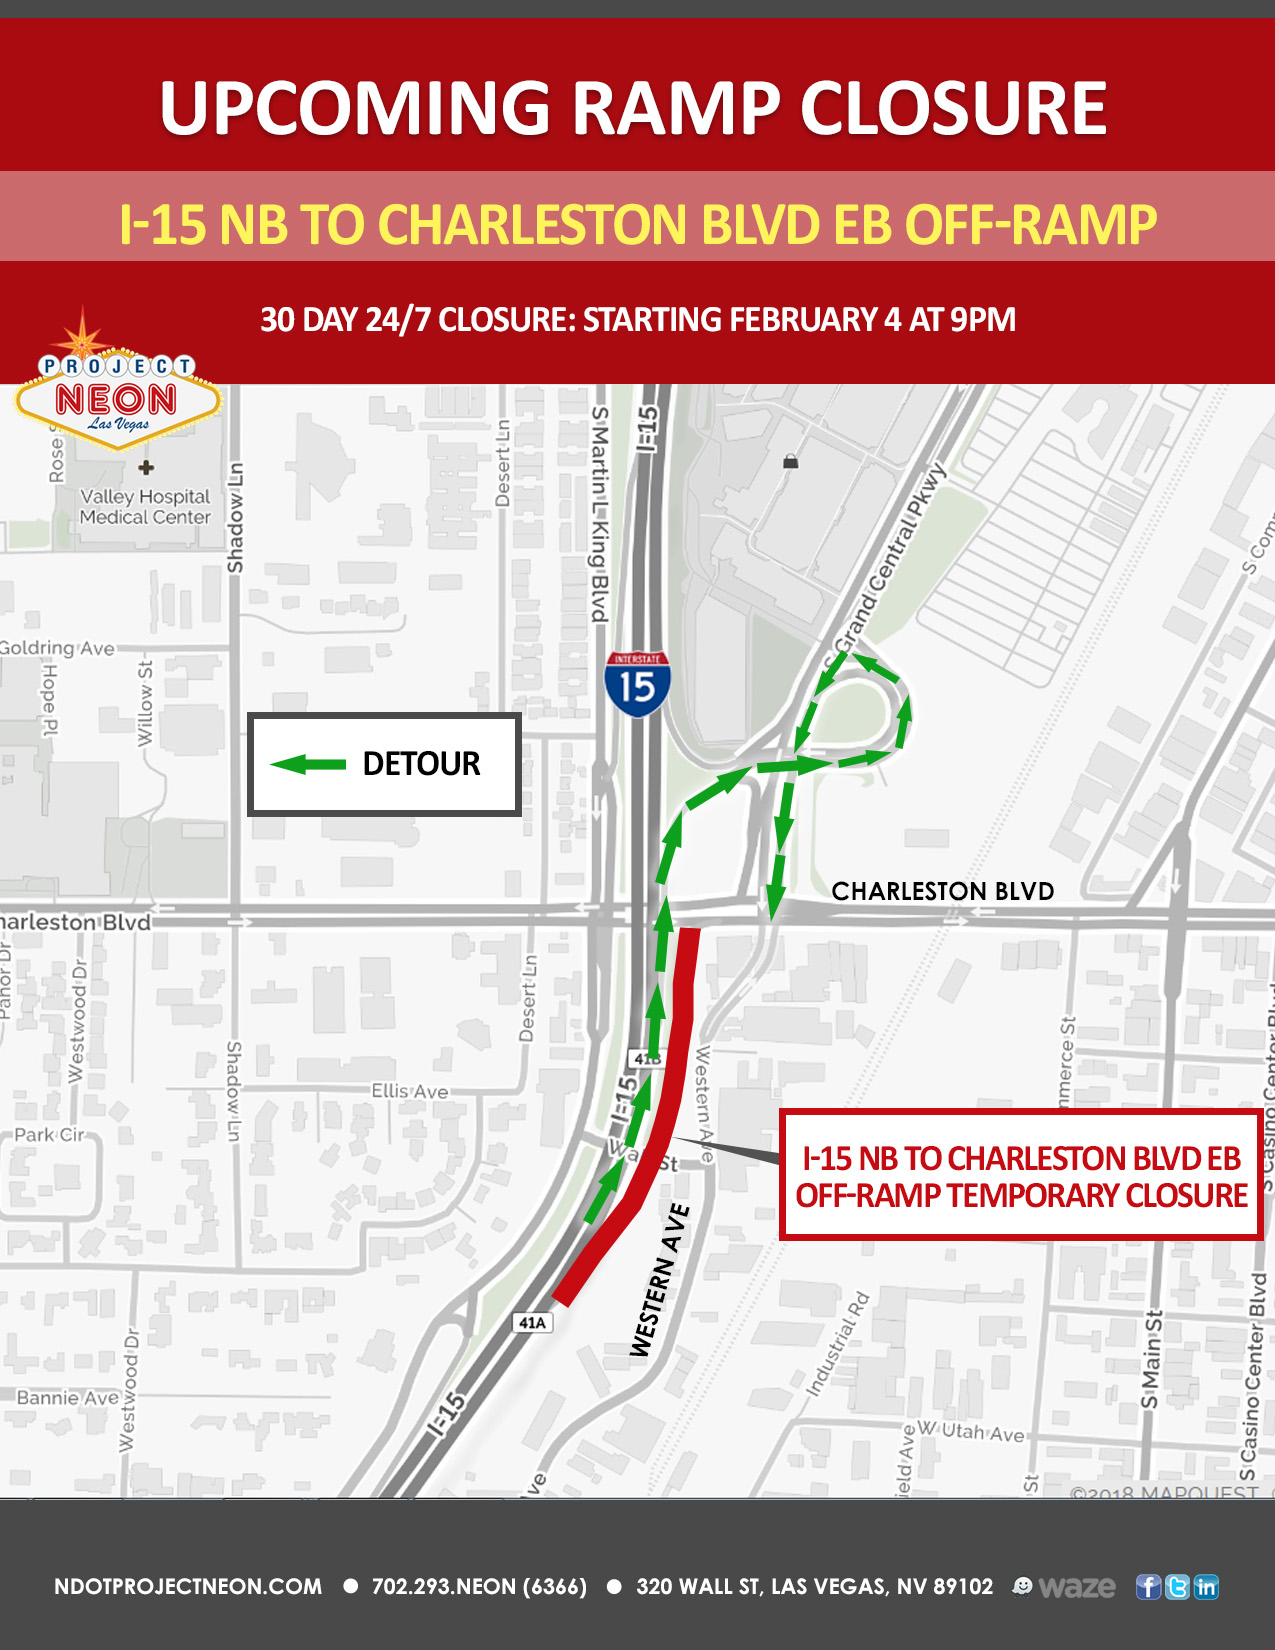 I-15 North to Charleston East Offramp in Las Vegas Closing